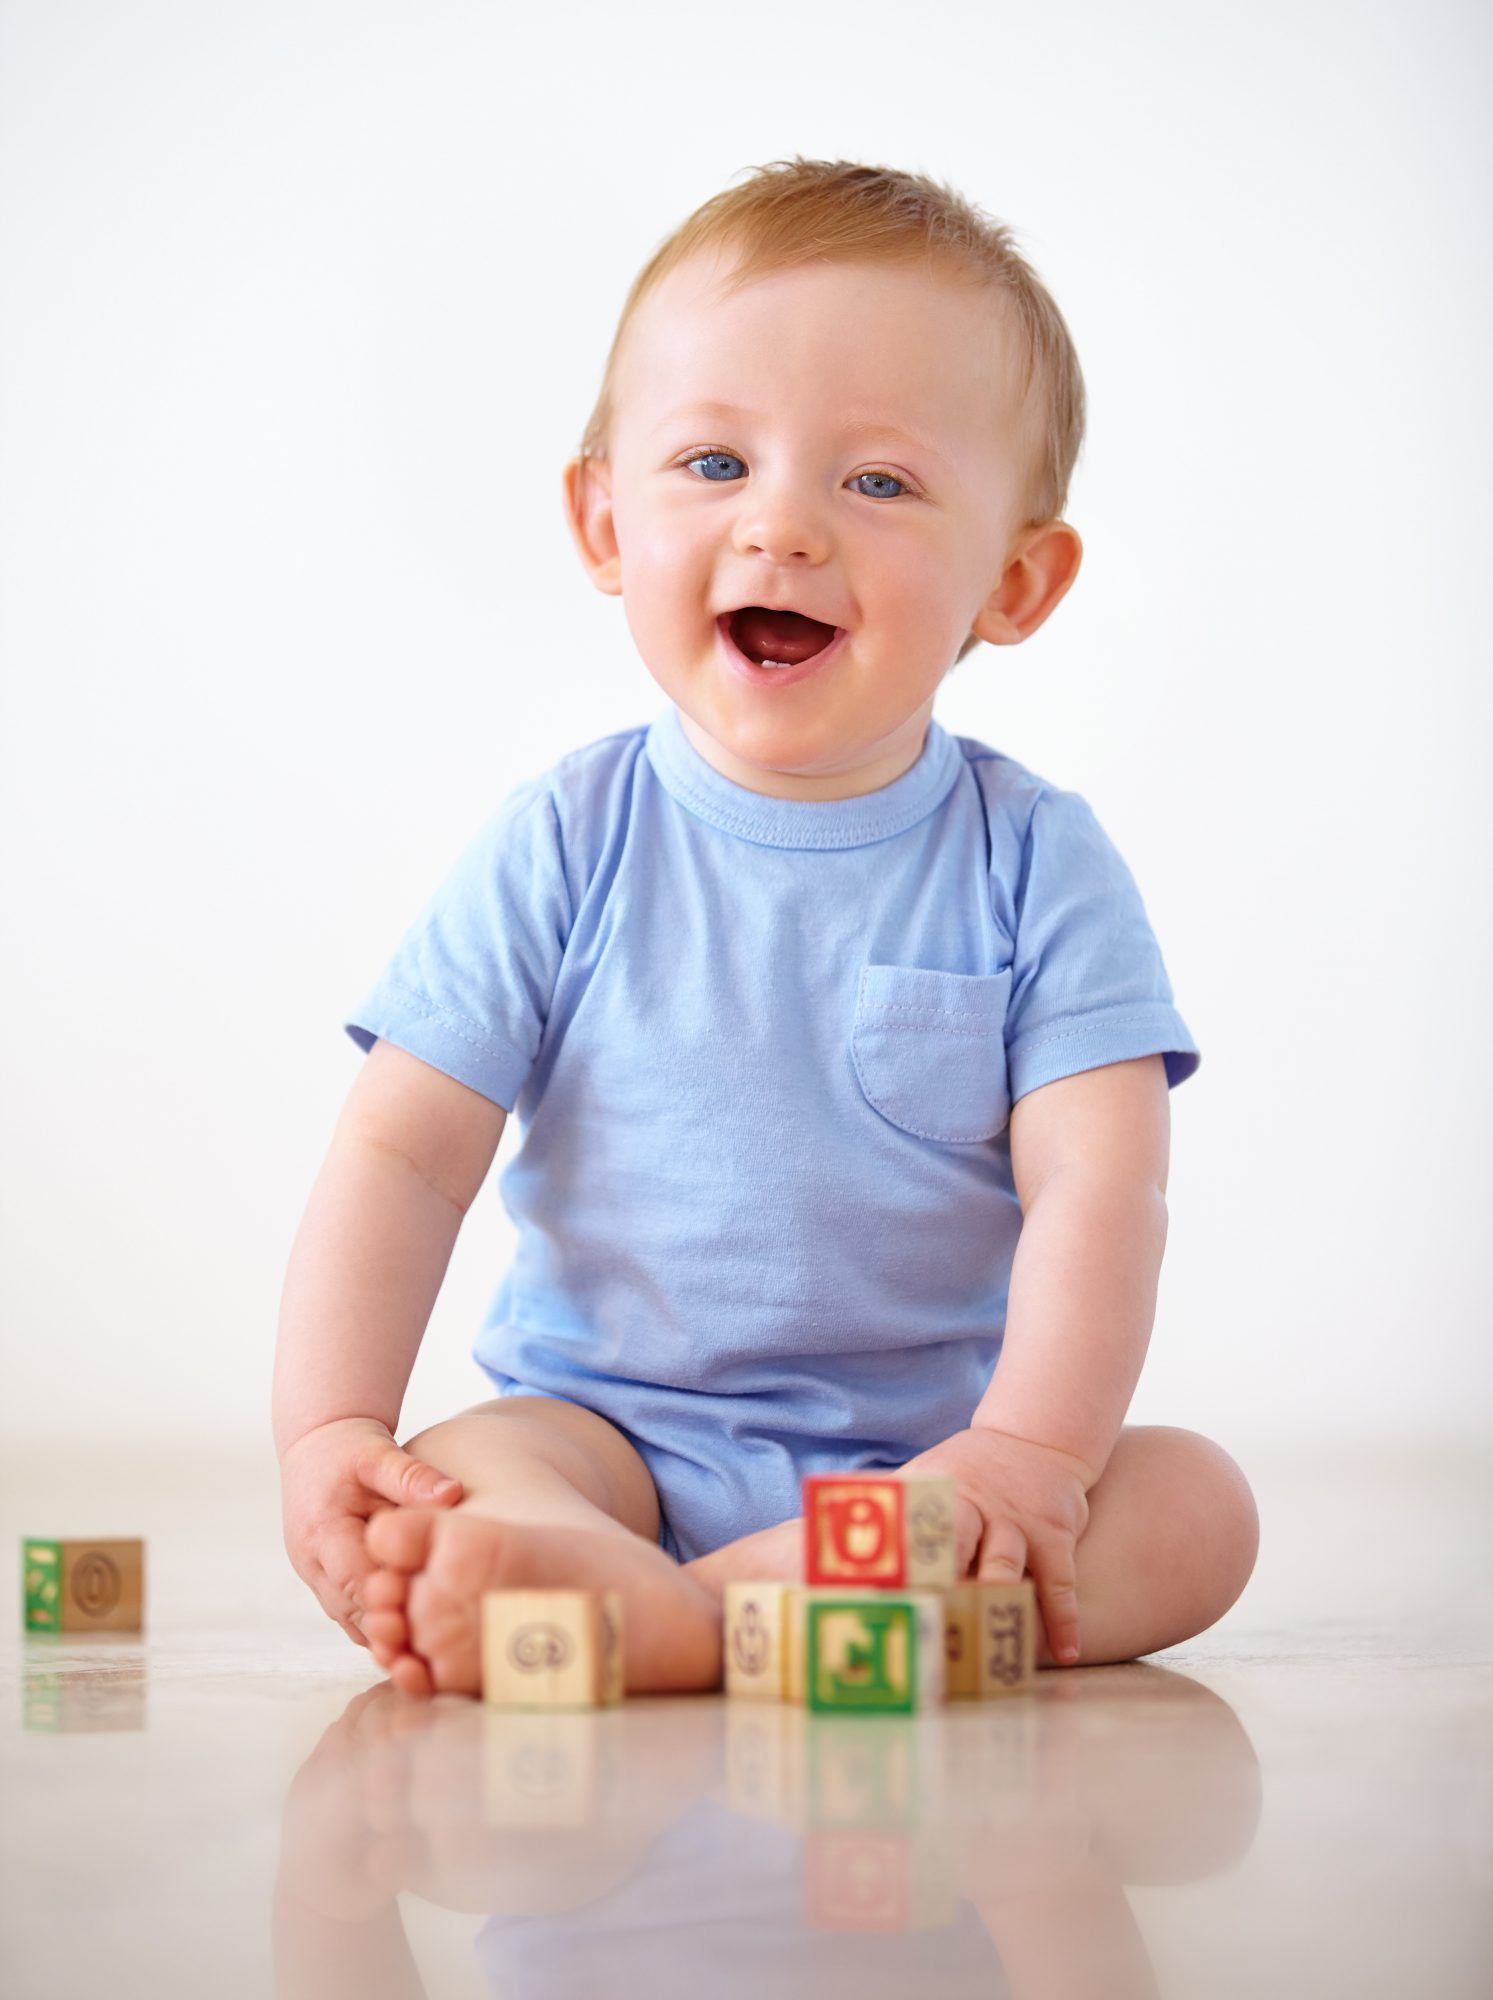 Shot of an adorable baby boy in his homehttp://195.154.178.81/DATA/shoots/ic_783316.jpg